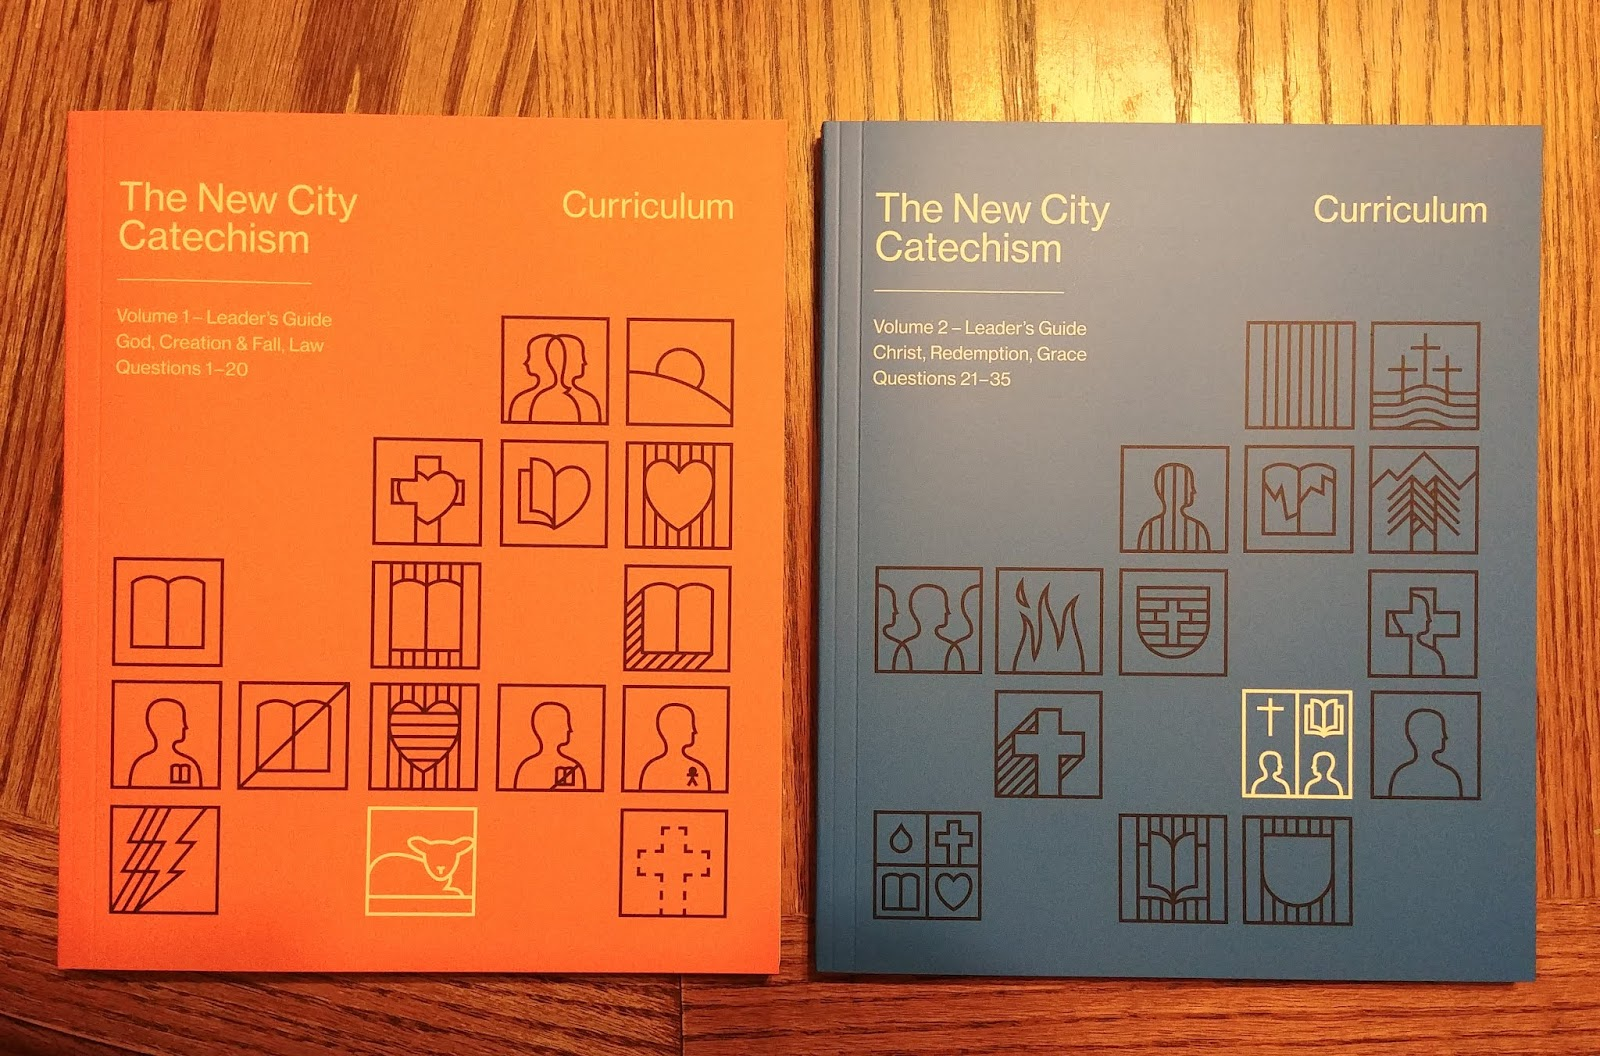 the new city catechism curriculum kit quot lessons for our hearts and minds quot